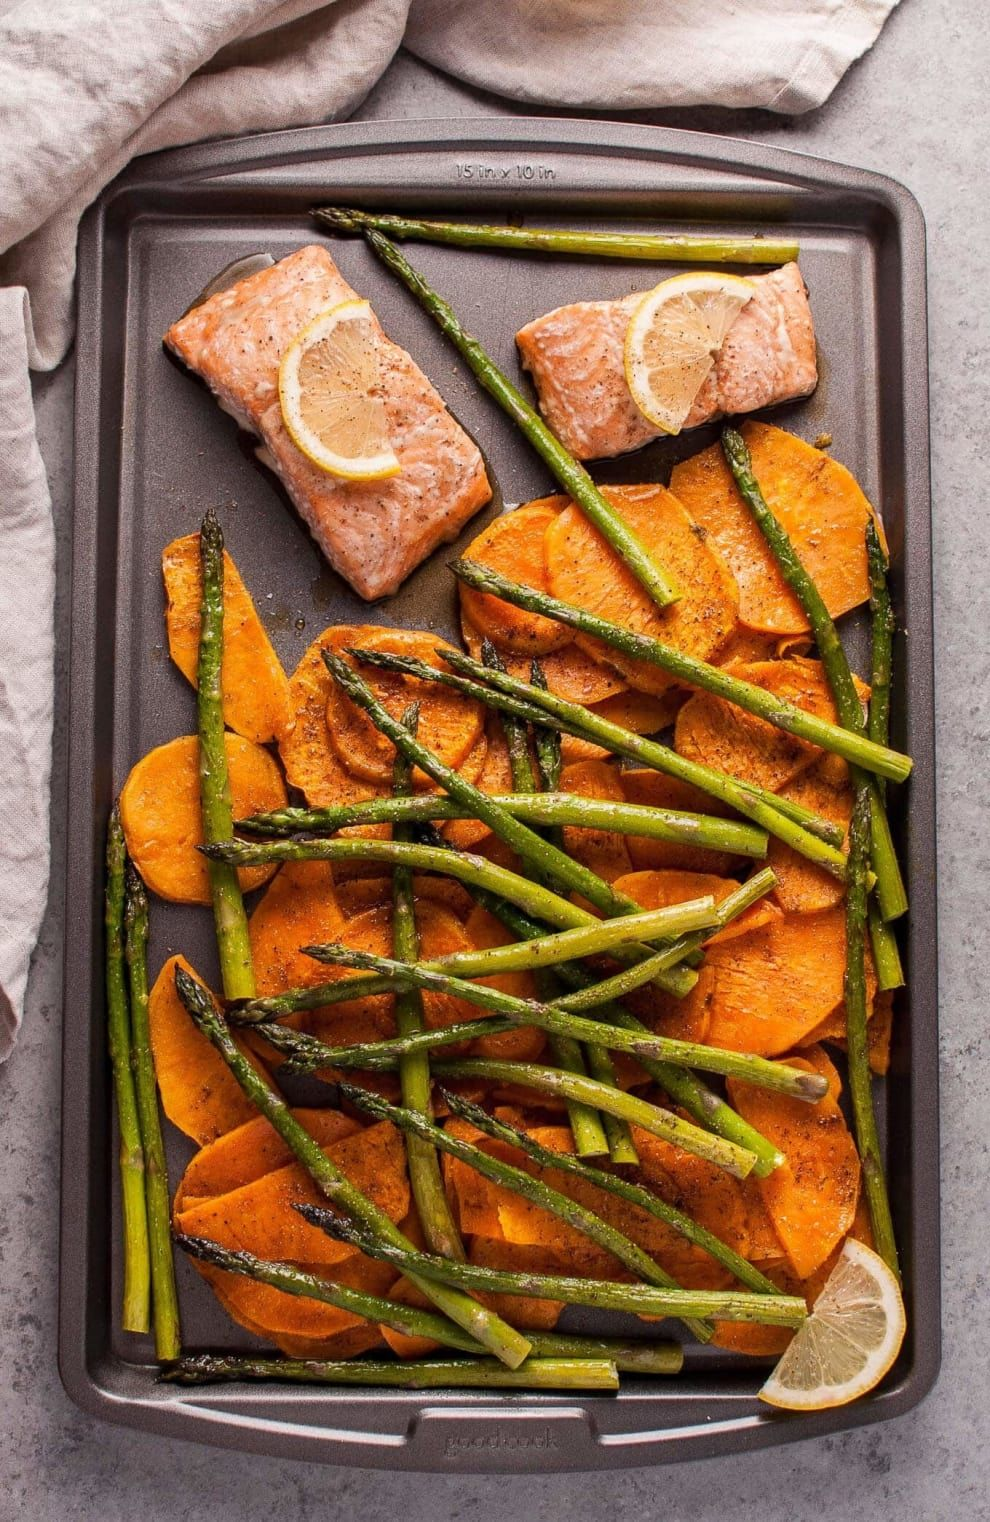 Photo of 18 great dishes to cook on a single baking sheet